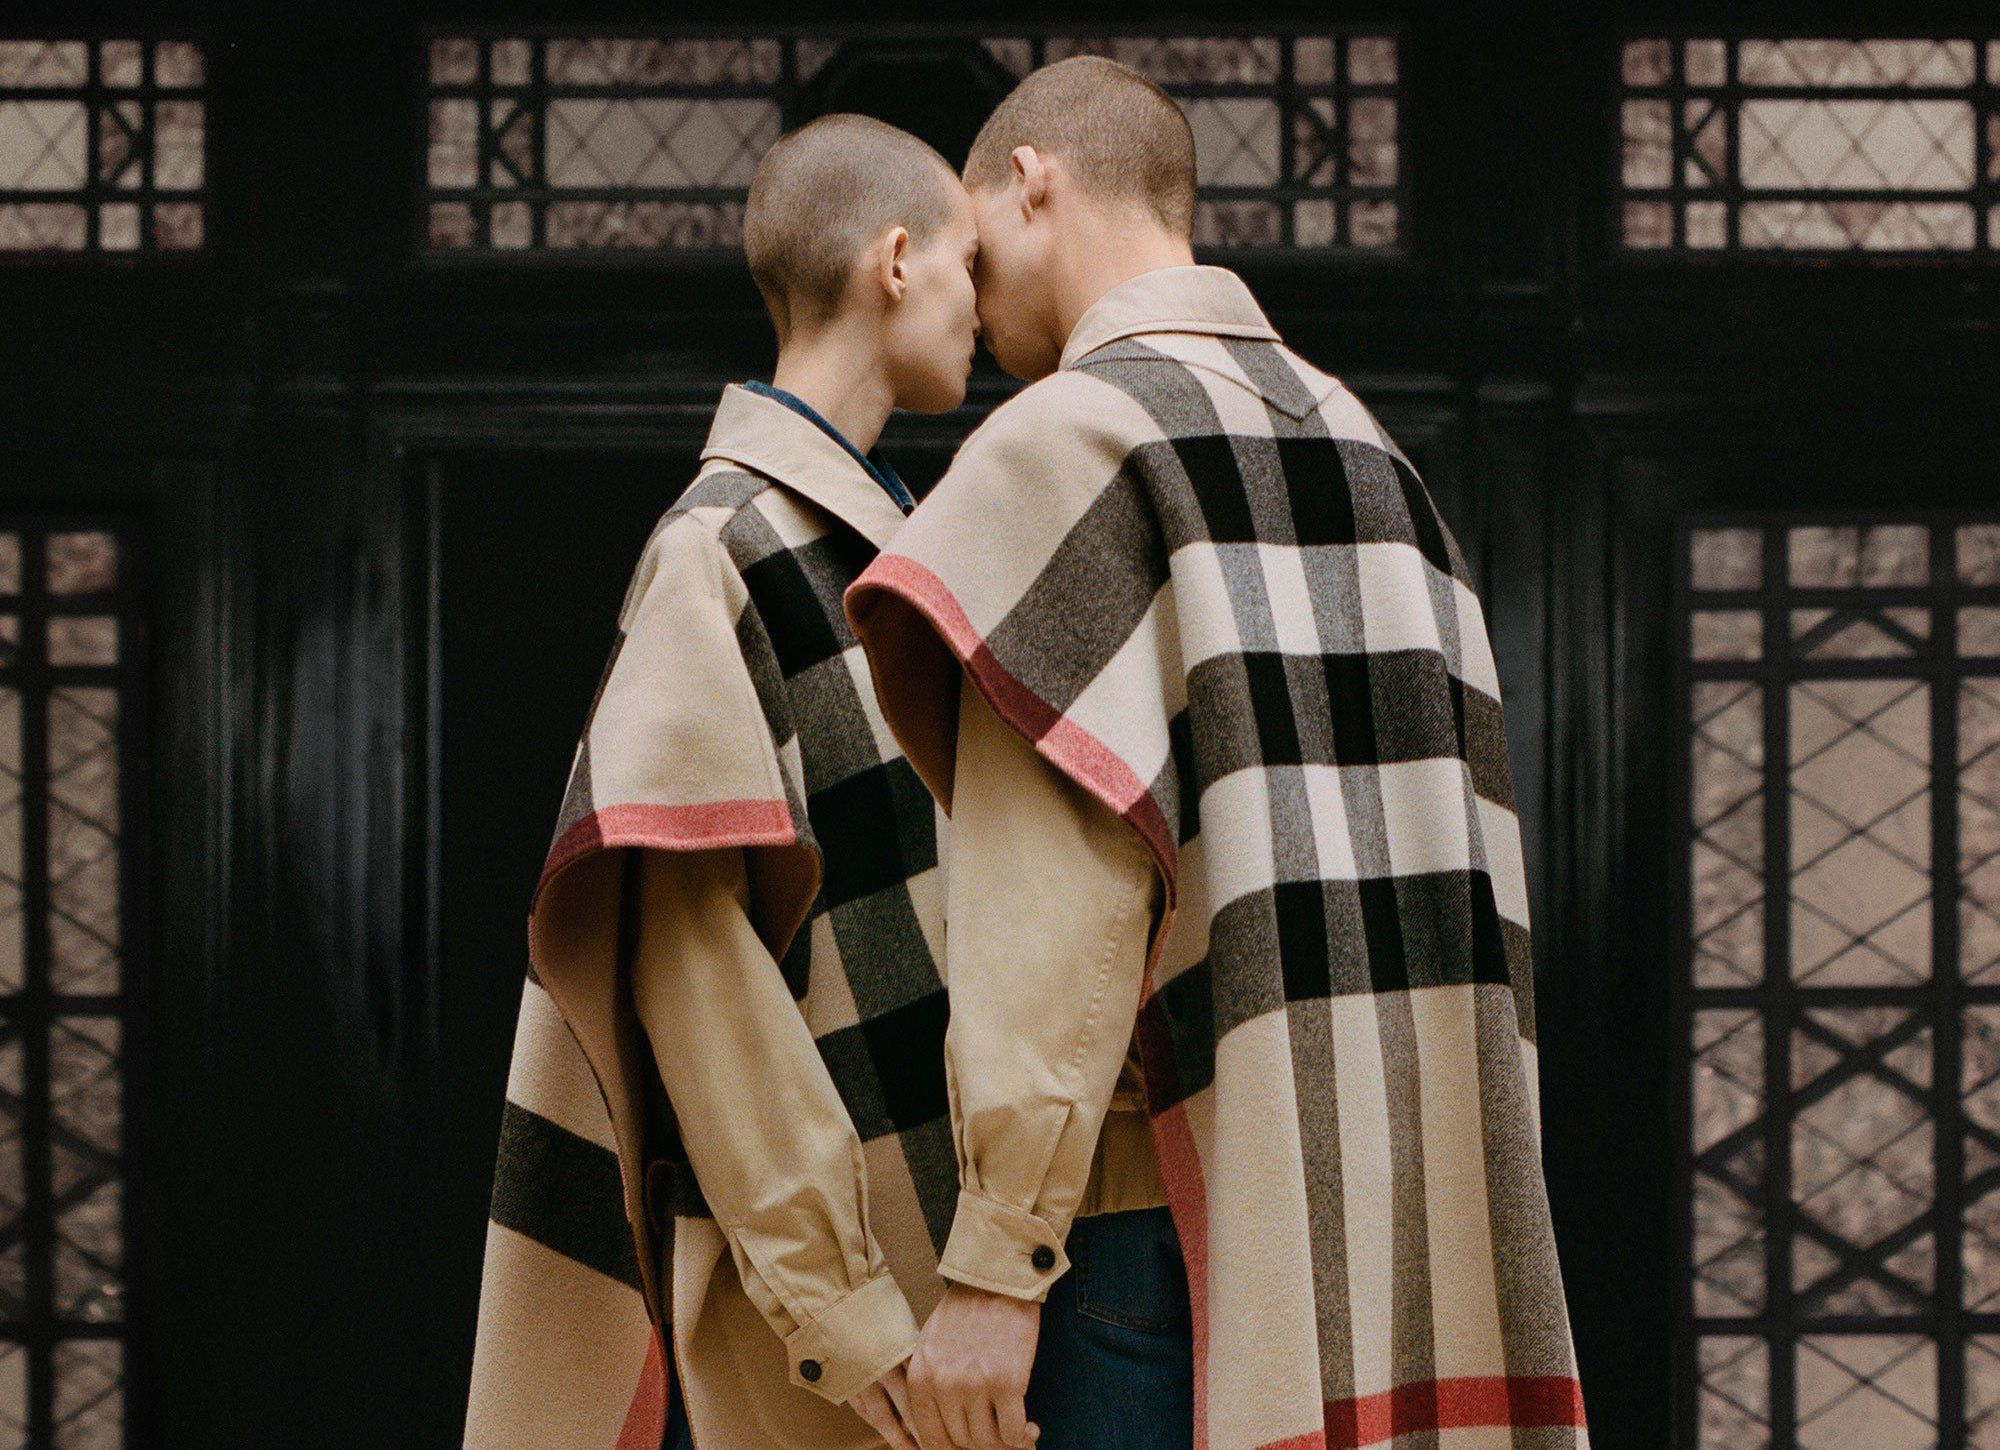 Riccardo Tisci's Debut Burberry Collection Will Be Available to Buy on Instagram